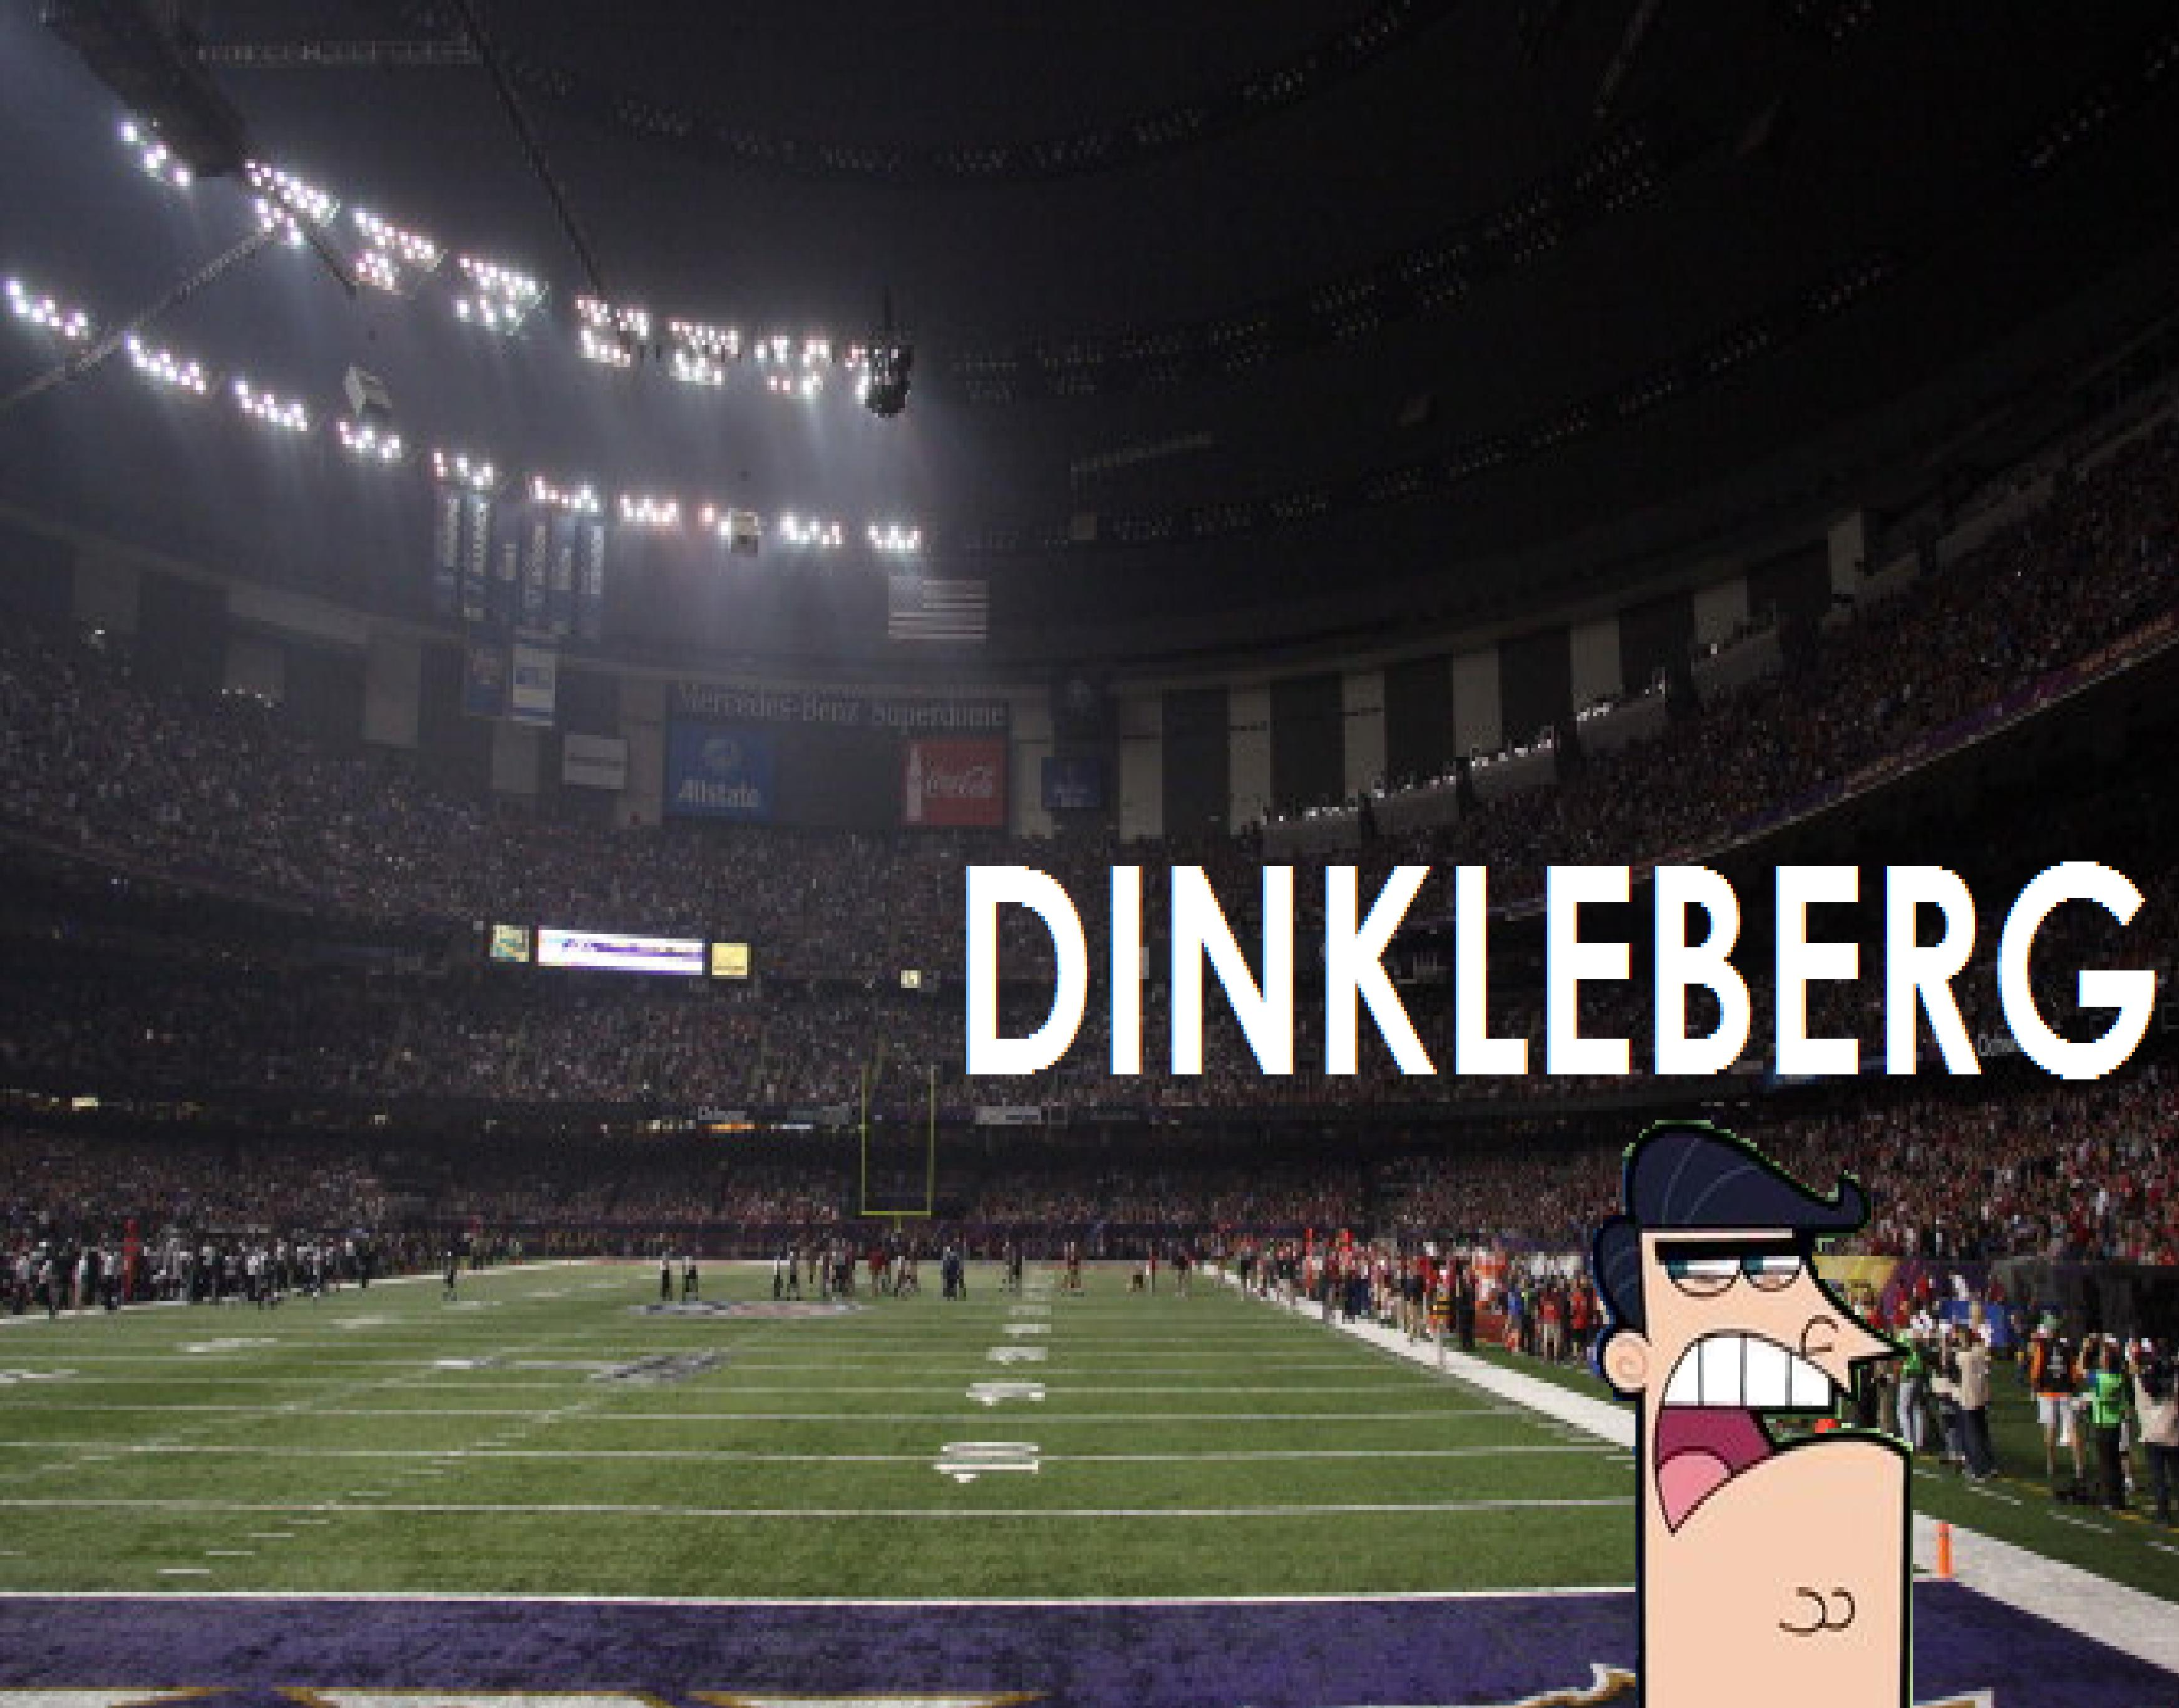 POWER OUTAGE? DINKLEBERG!